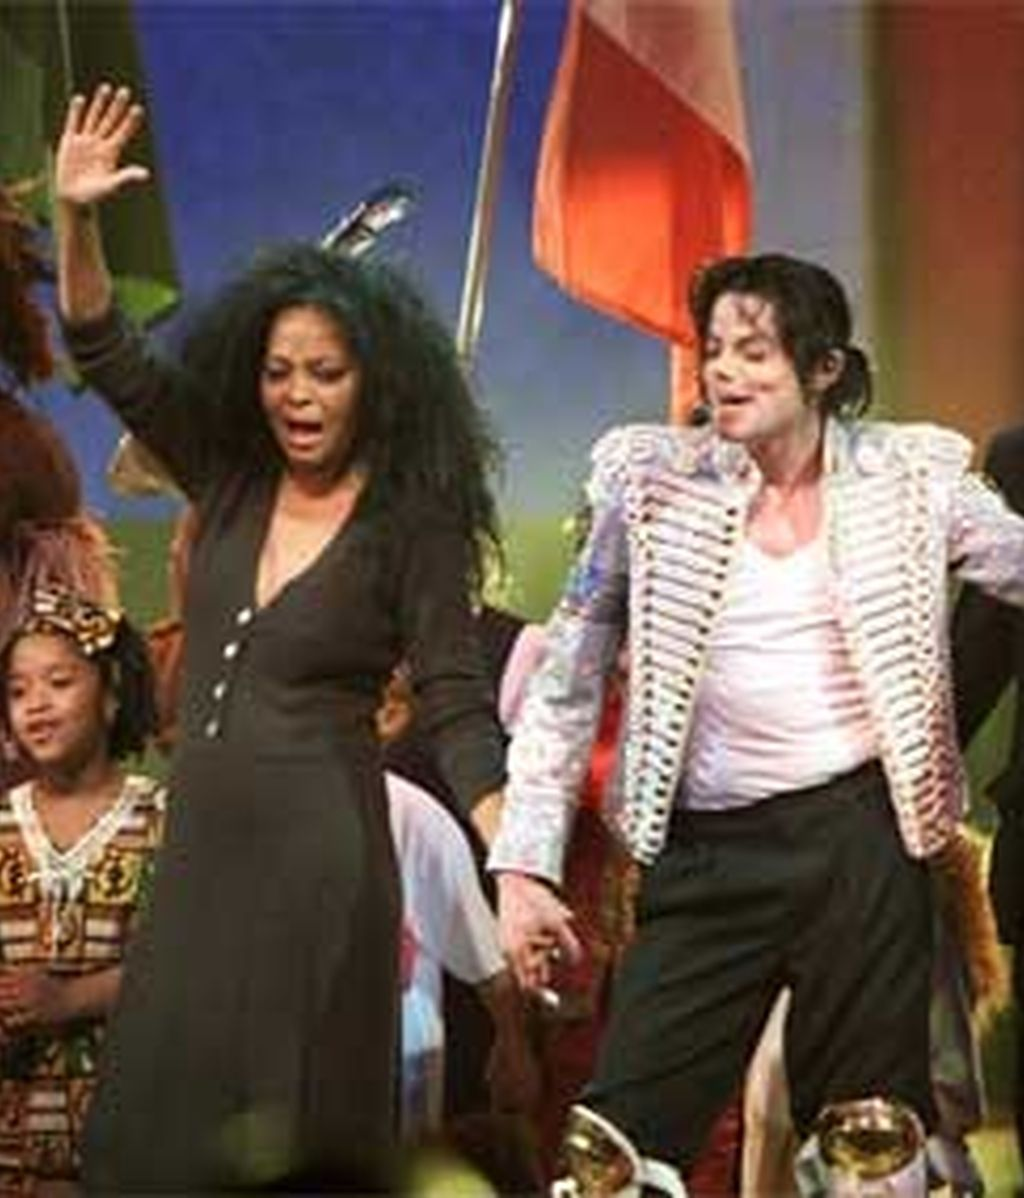 Michael Jackson actuó junto a Diana Ross en el espectáculo 'A Night At The Apollo' en 2002. Foto: Reuters.